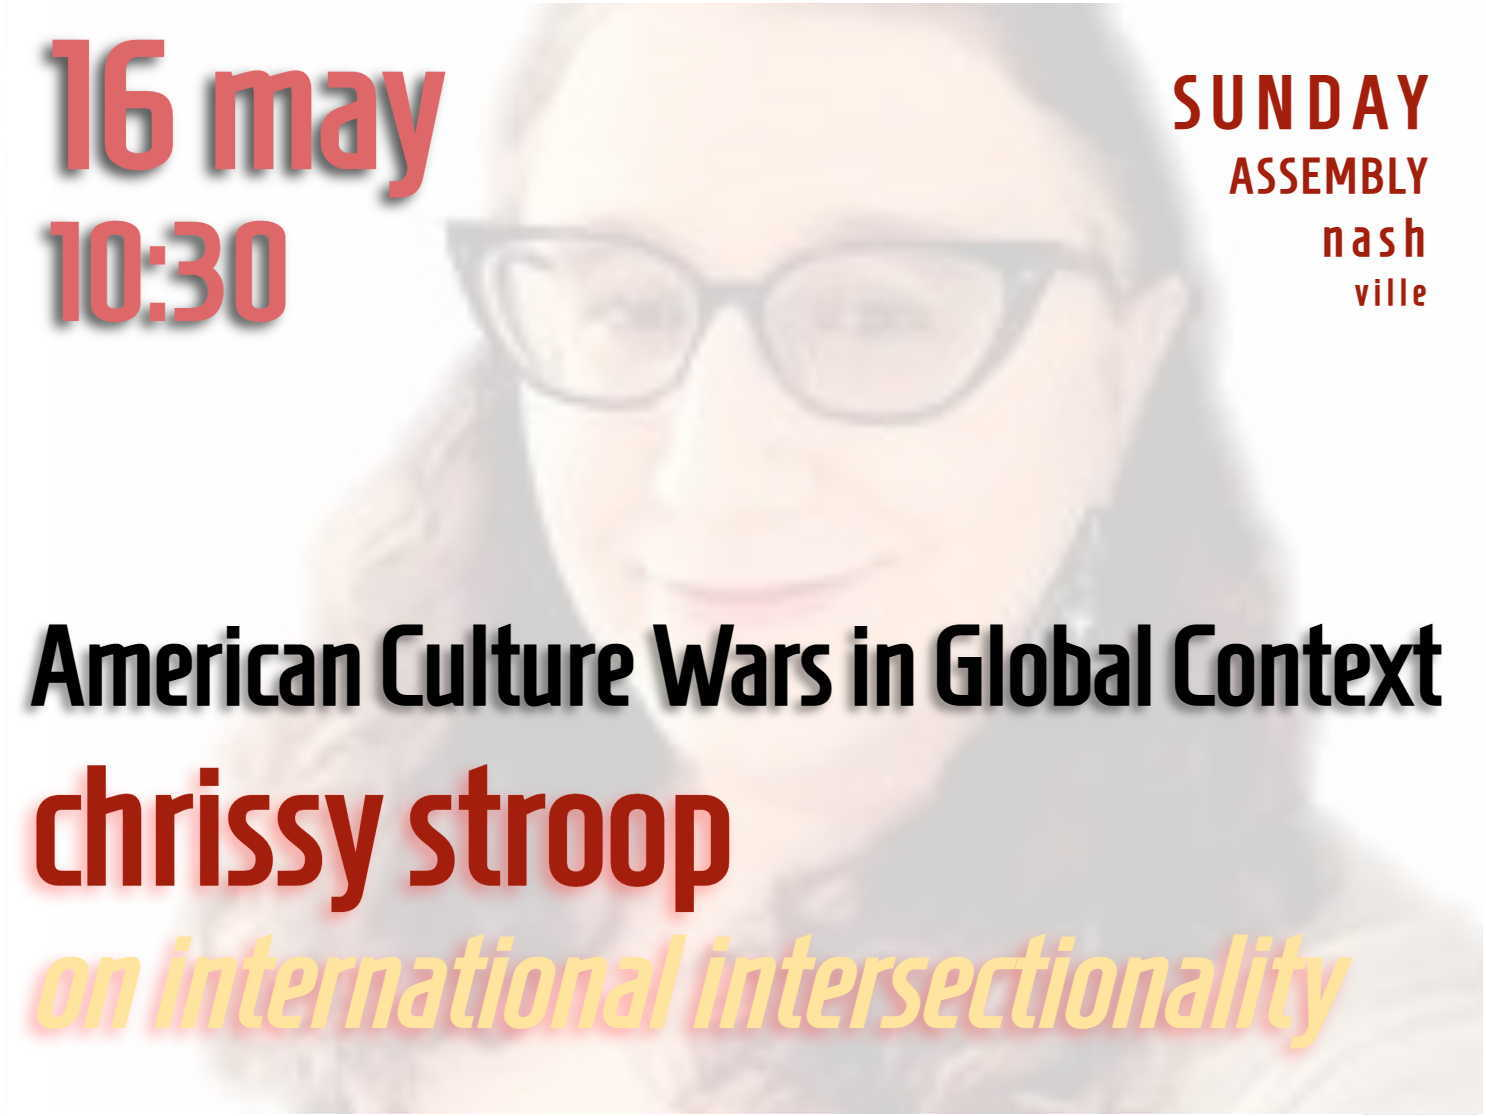 The American Culture Wars in Global Context Chrissy Stroop on International Intersectionality Sunday Assembly Nashville • 16 may • 10.30